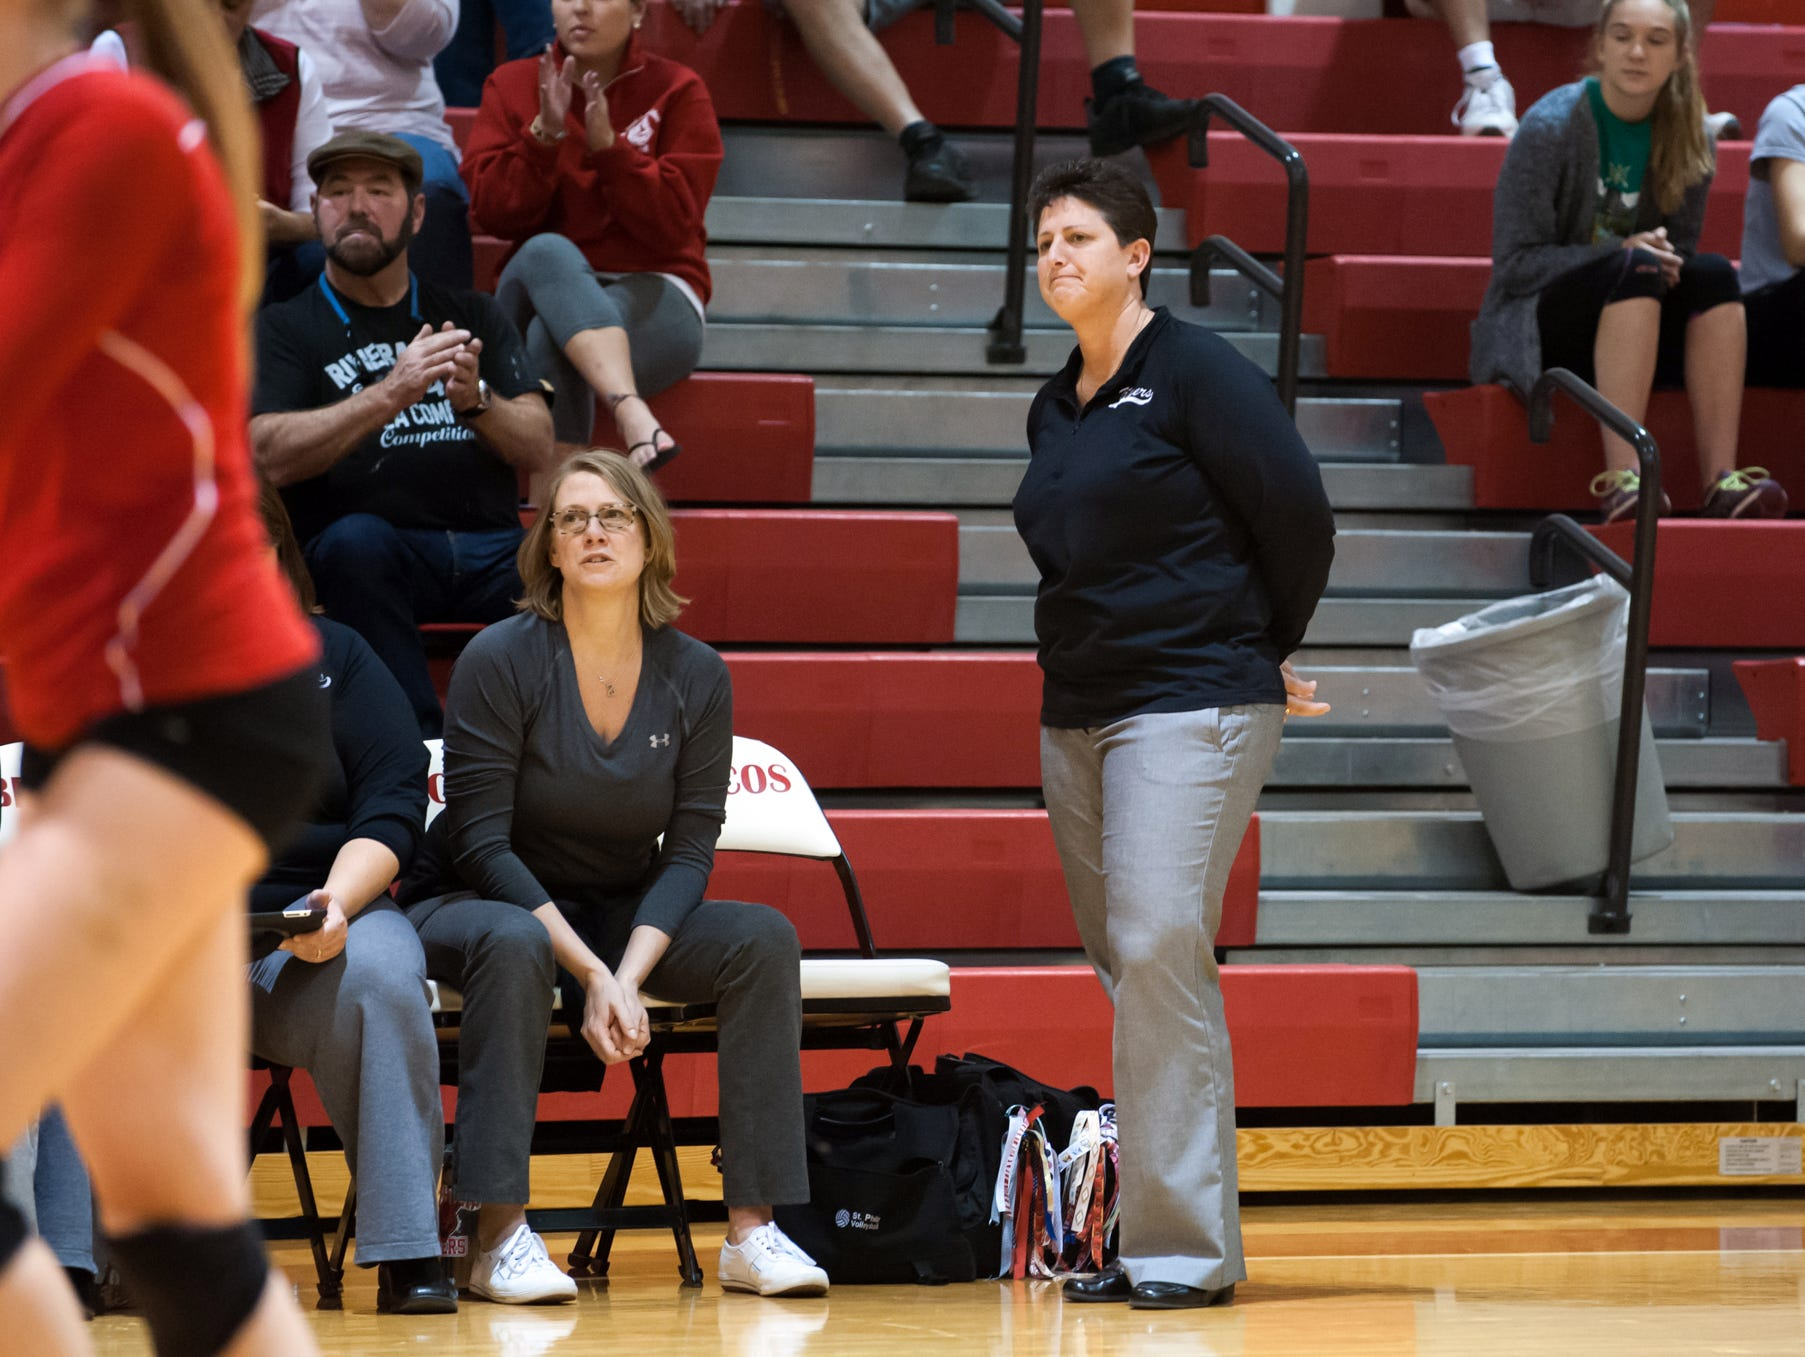 St. Philip head coach Vicky Groat watches her team in action Tuesday night.